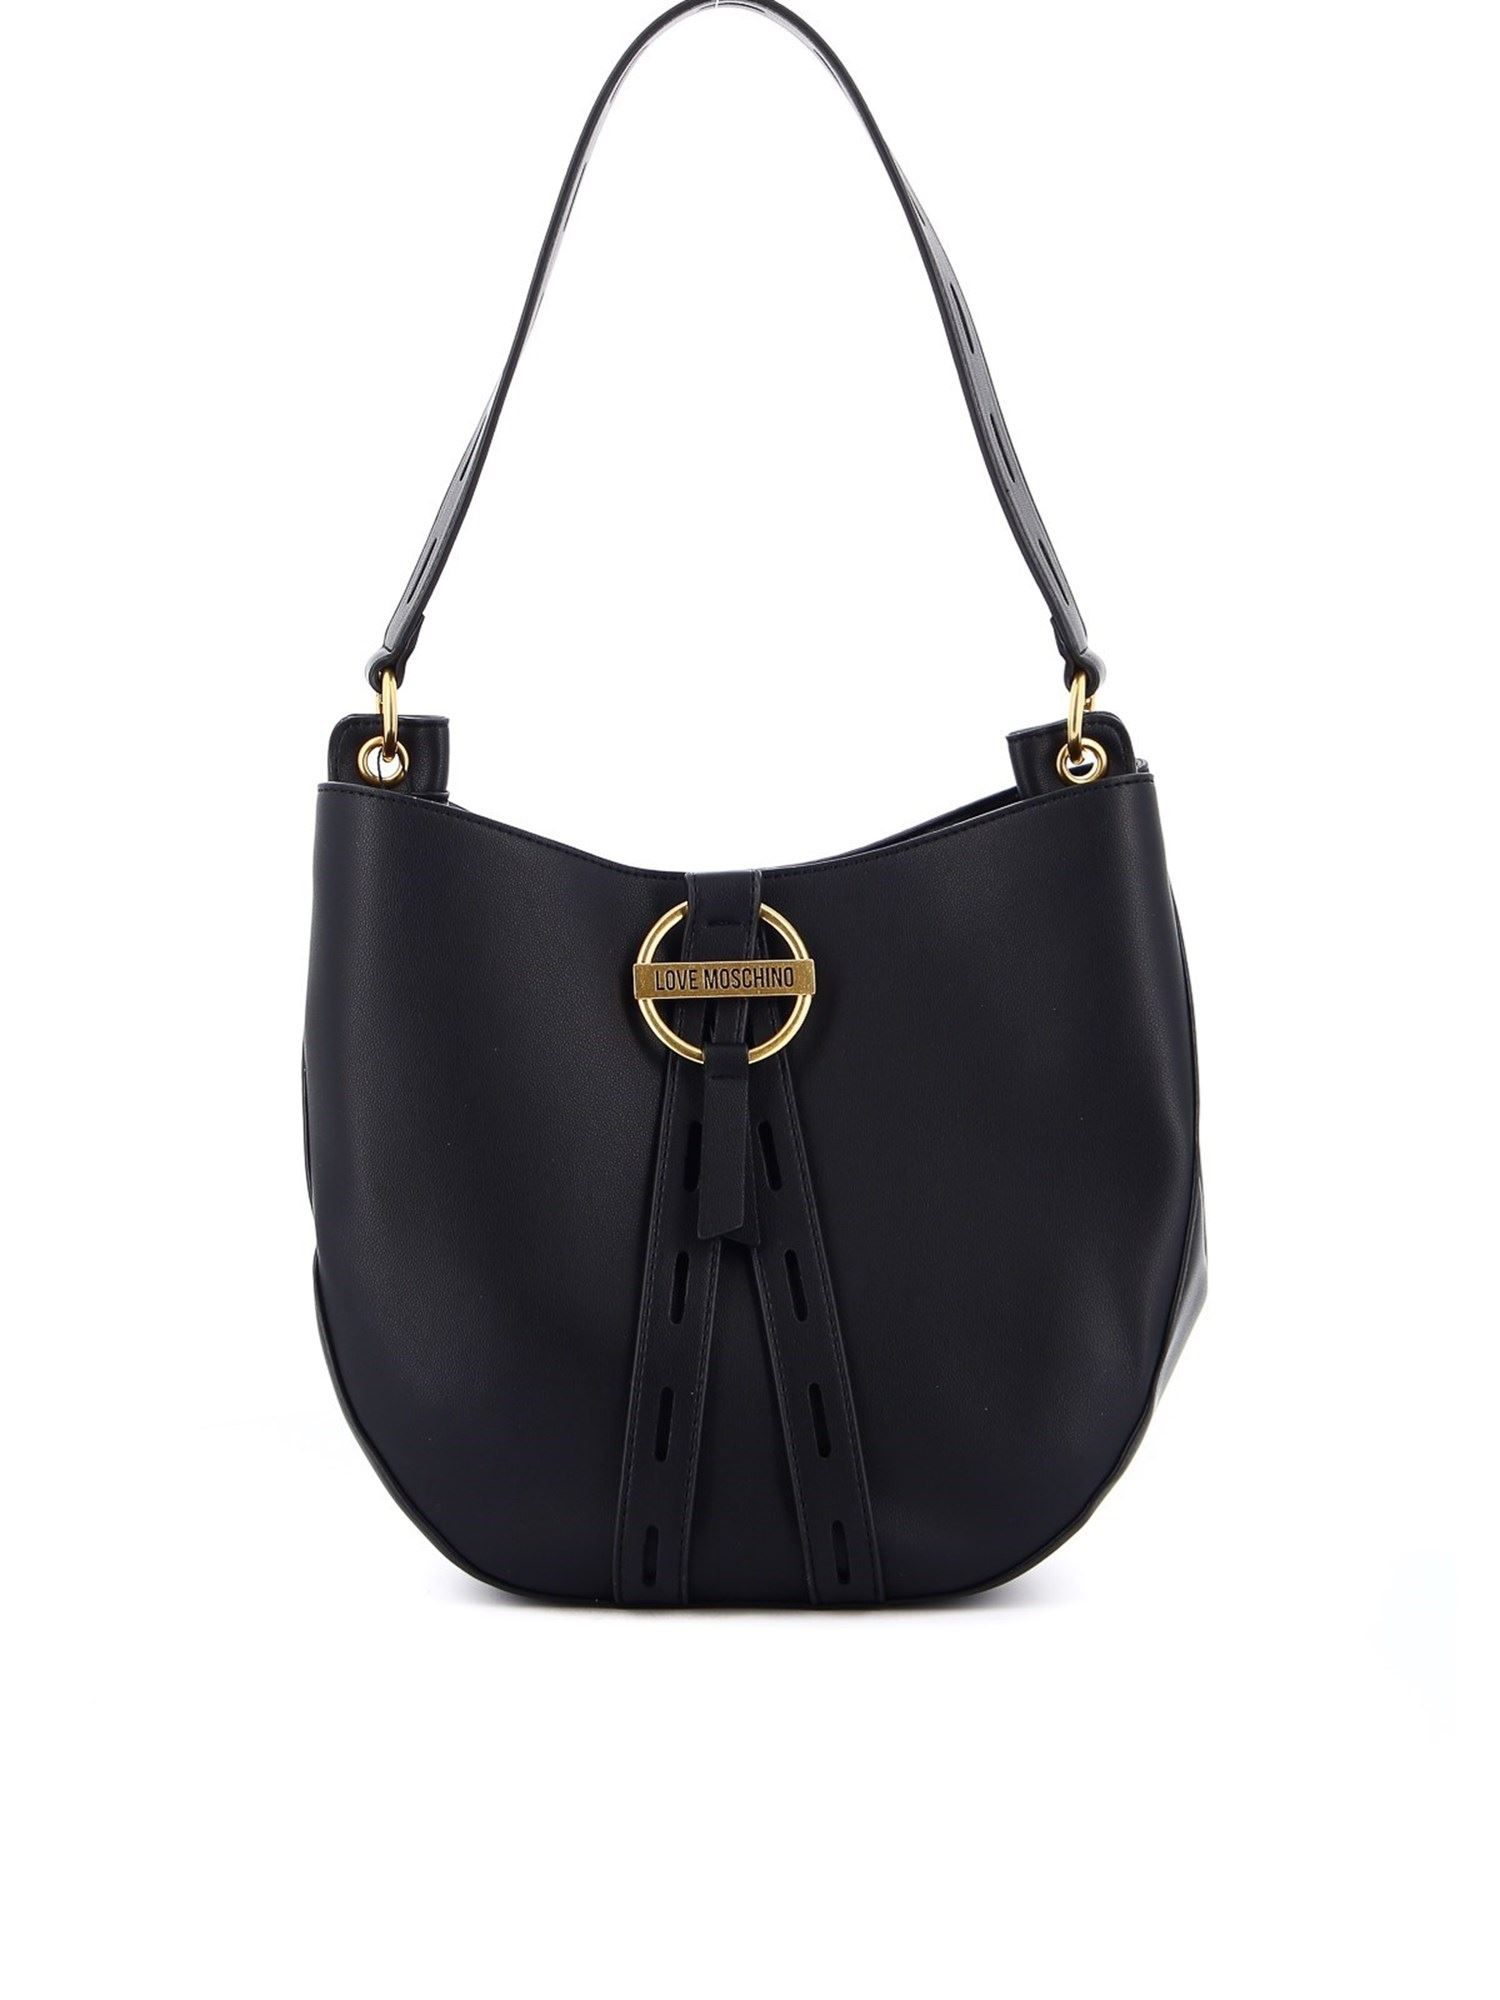 Love Moschino HOBO BAG IN BLACK WITH GOLDEN LOGO